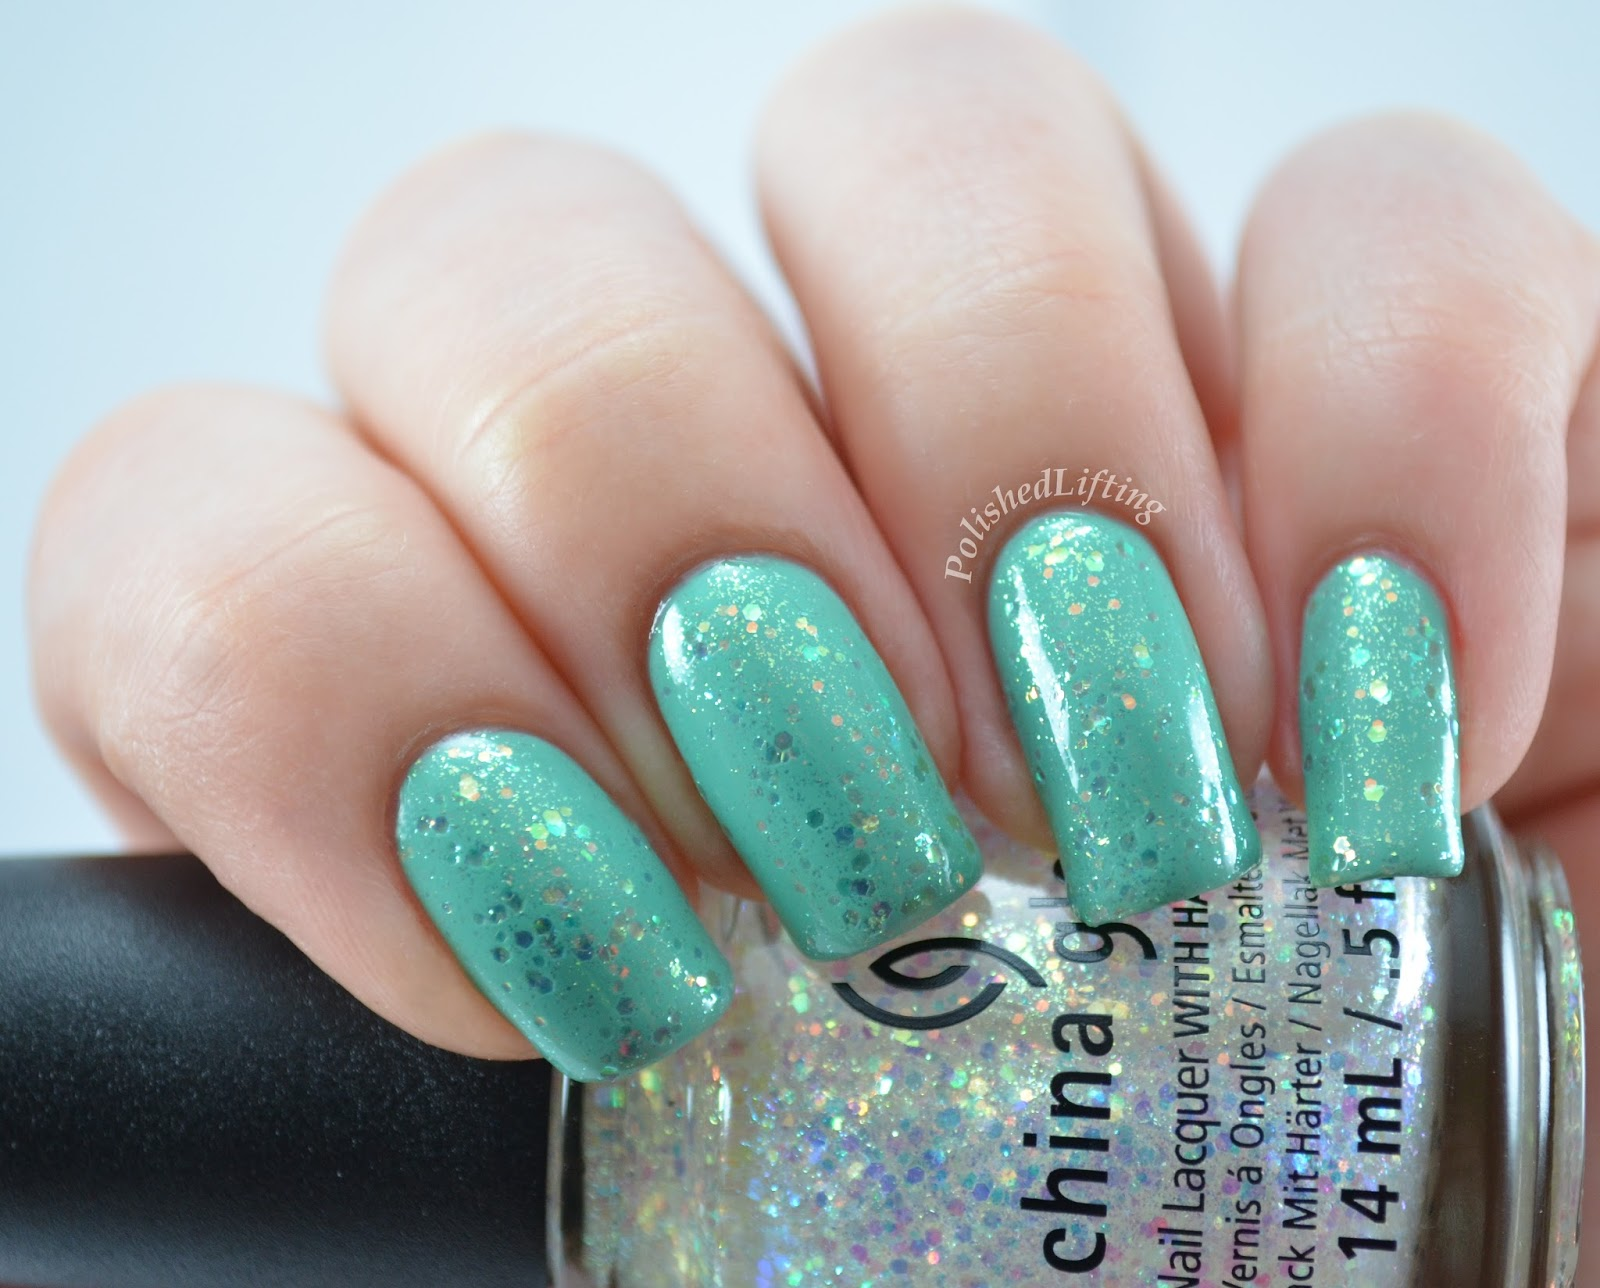 China Glaze Make A Spectacle Ulta Mint Condition